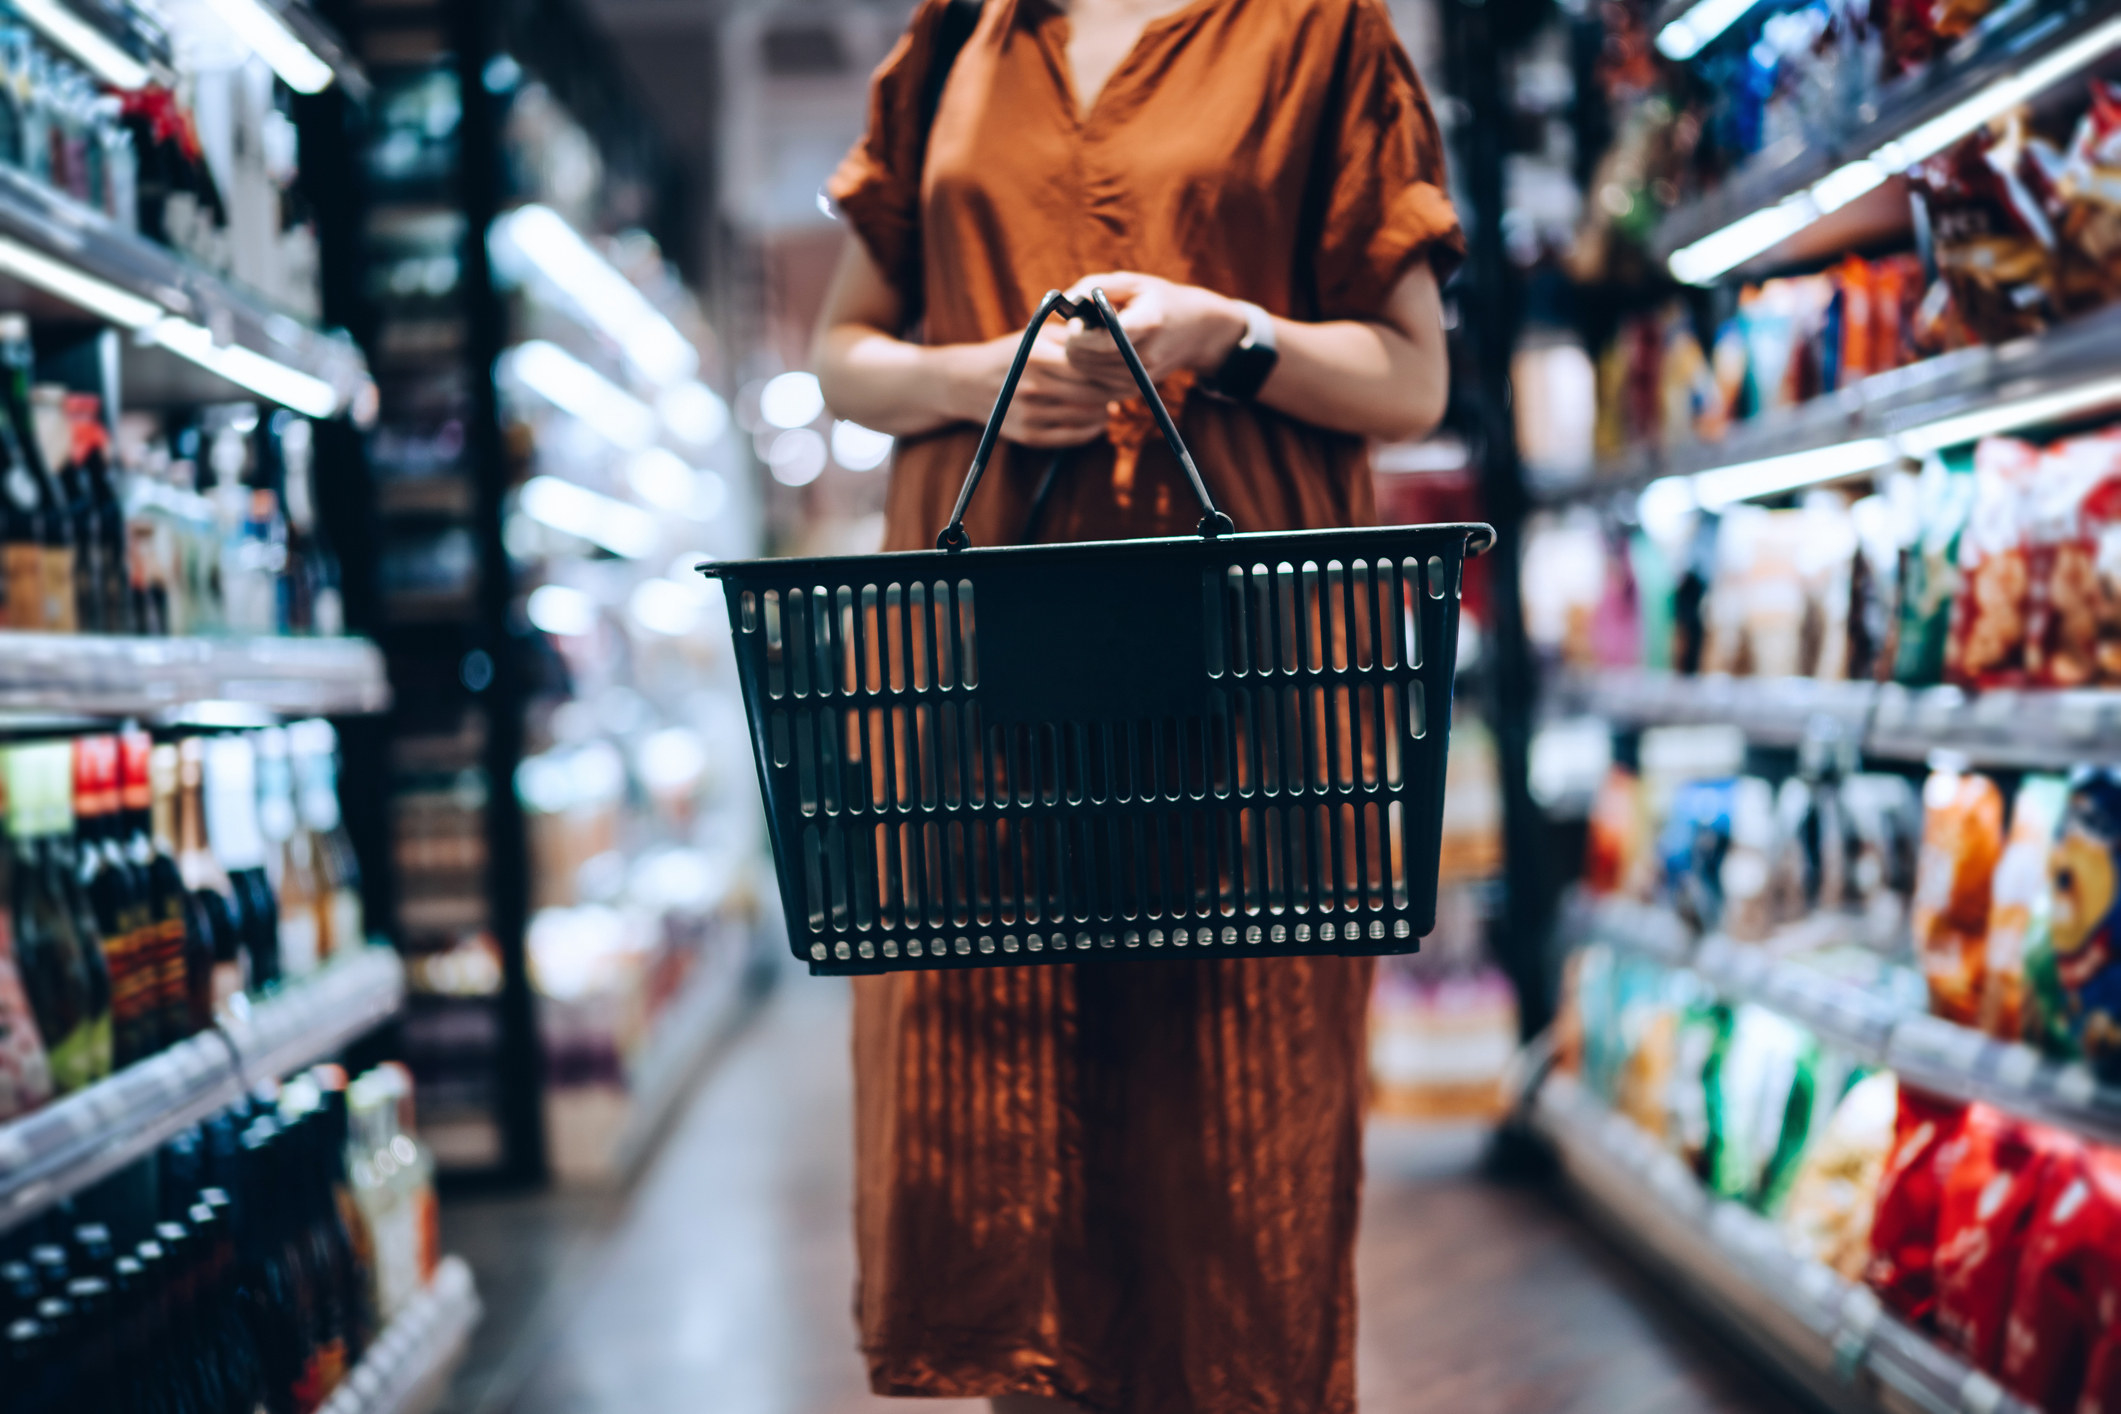 A woman shopping at a grocery store.